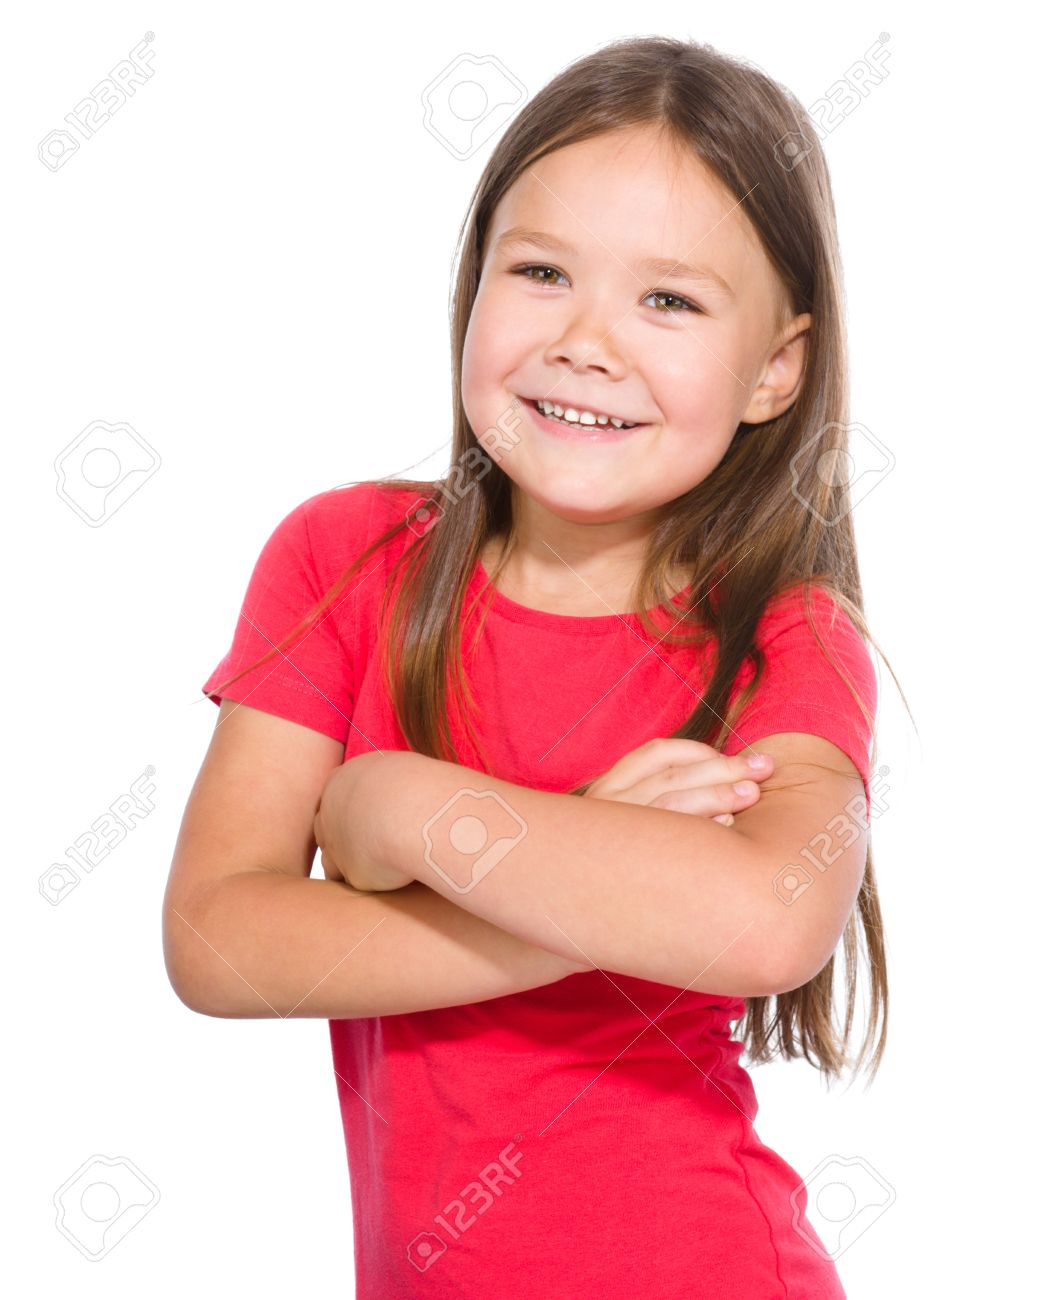 fbde7e549d642 Portrait of a happy little girl in red t-shirt crossing her hands, isolated